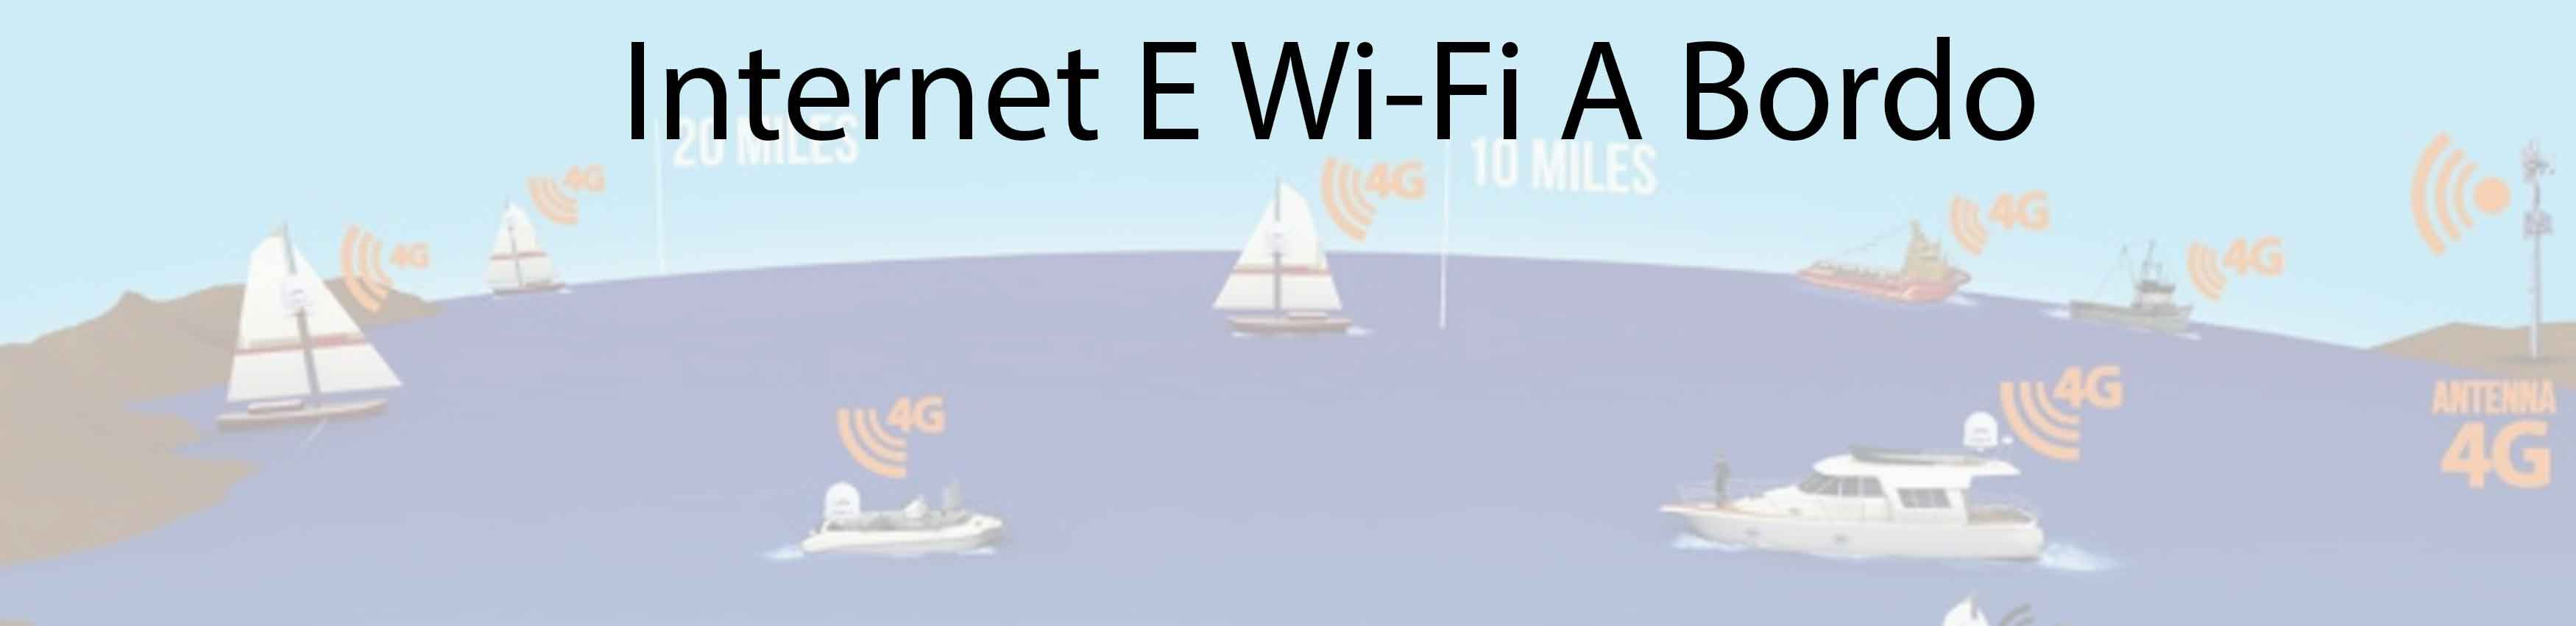 Internet e Wi-Fi a bordo